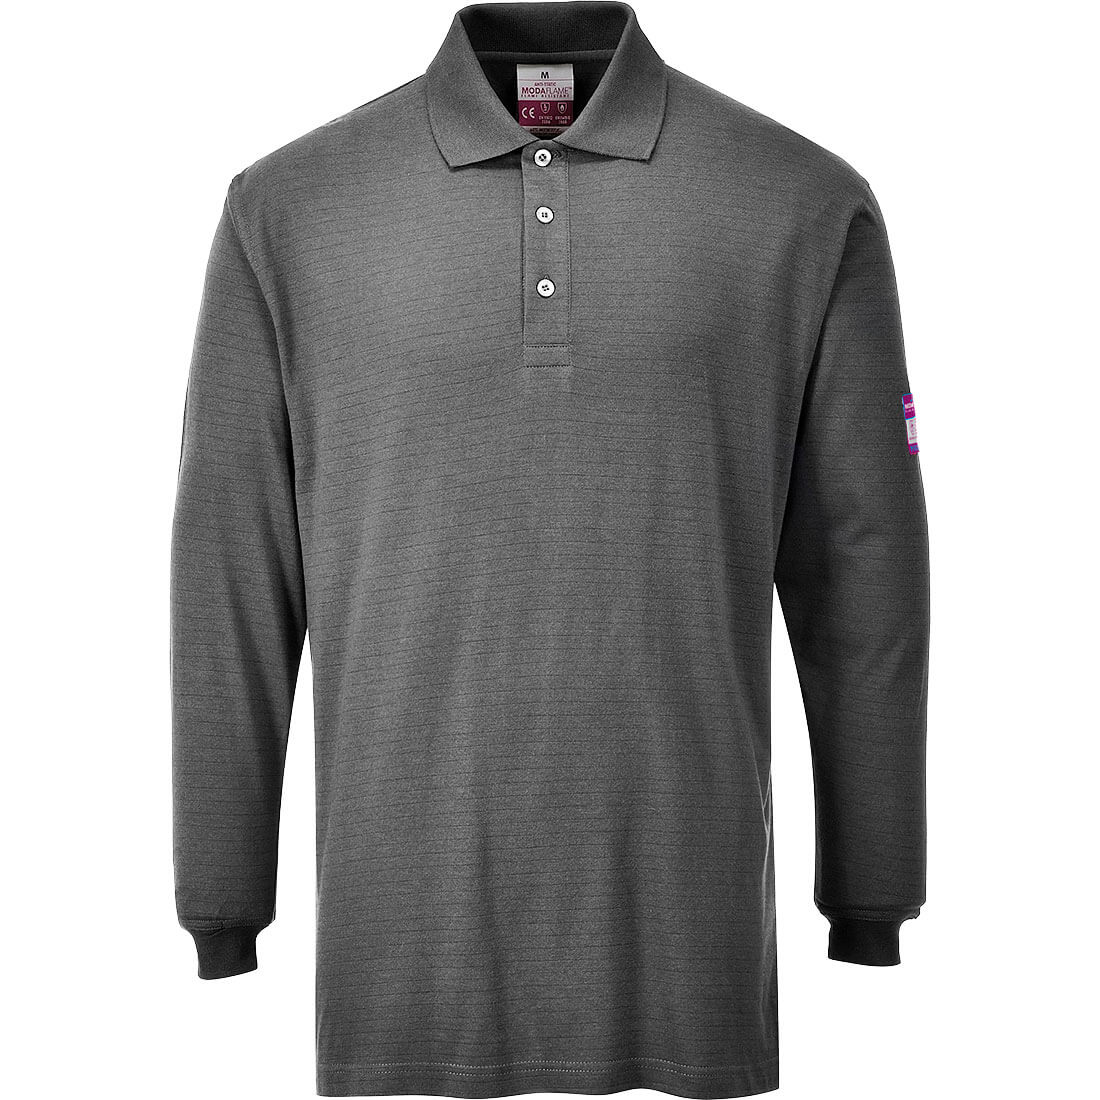 Image of Modaflame Mens Flame Resistant Antistatic Long Sleeve Polo Shirt Grey 3XL